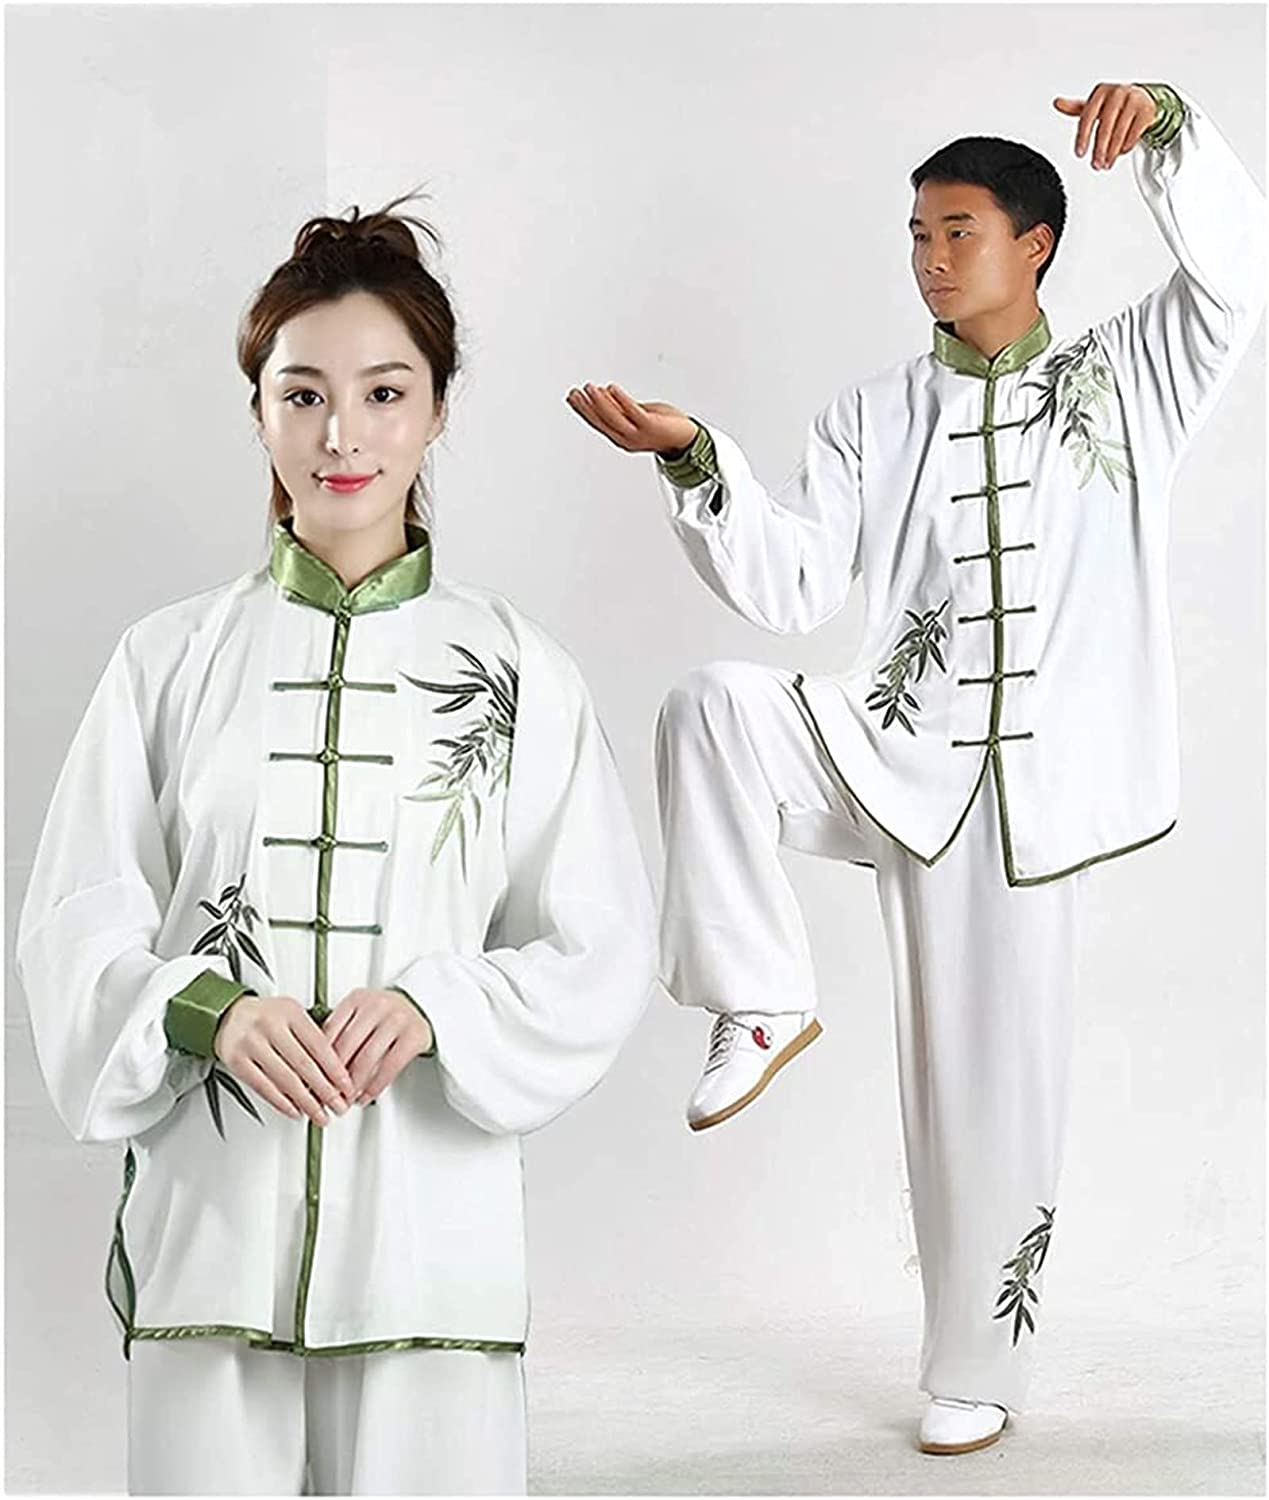 HELOU Tai Chi Uniform-Hand Embroidery Unisex Cotton Chinese Kung Fu artial Arts Wear (Color : Green, Size : XS-Small)